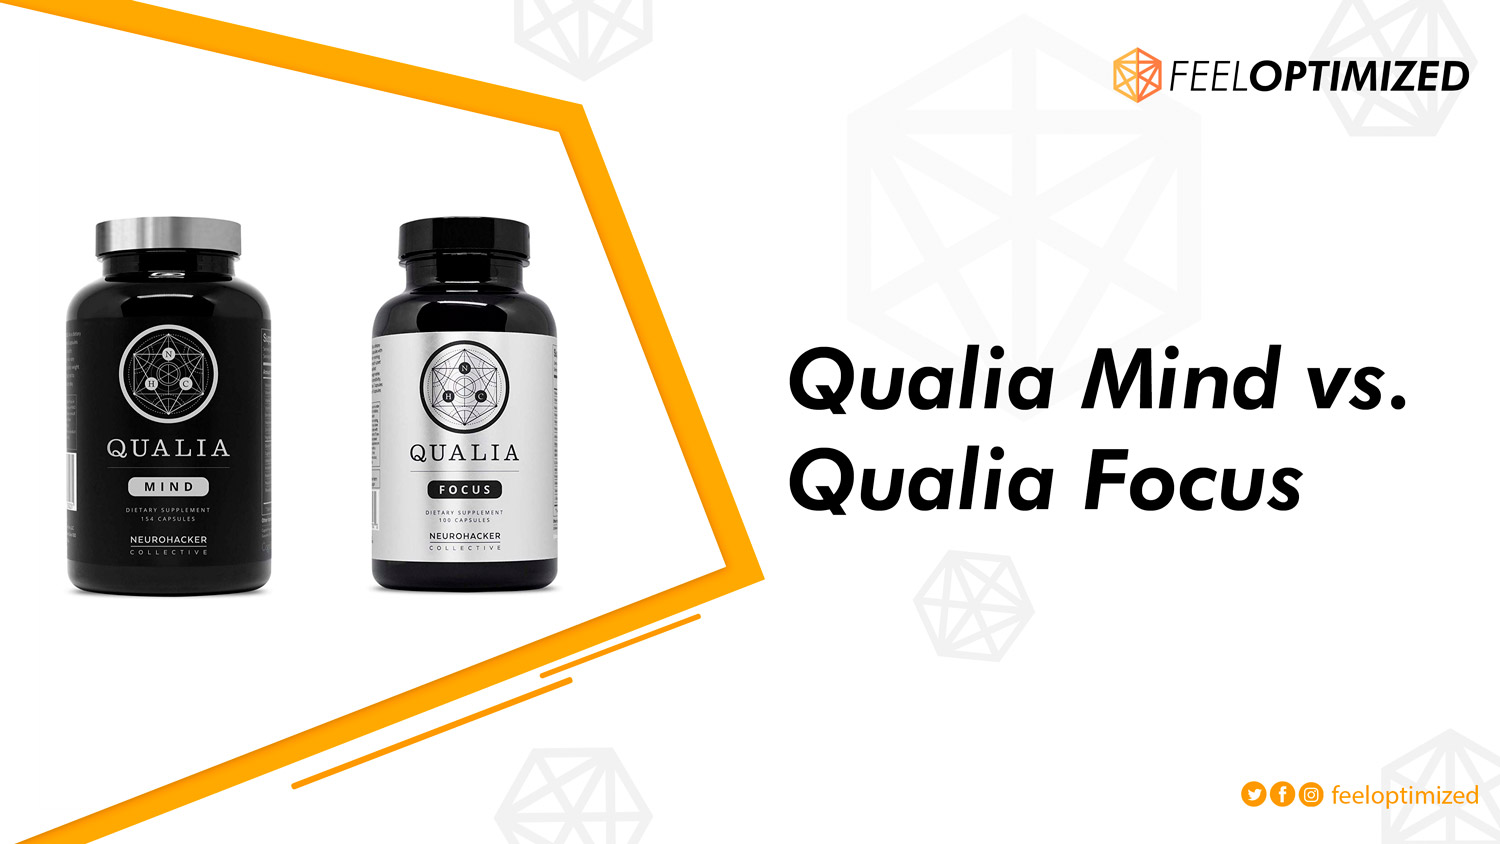 qualia-mind-vs-focus